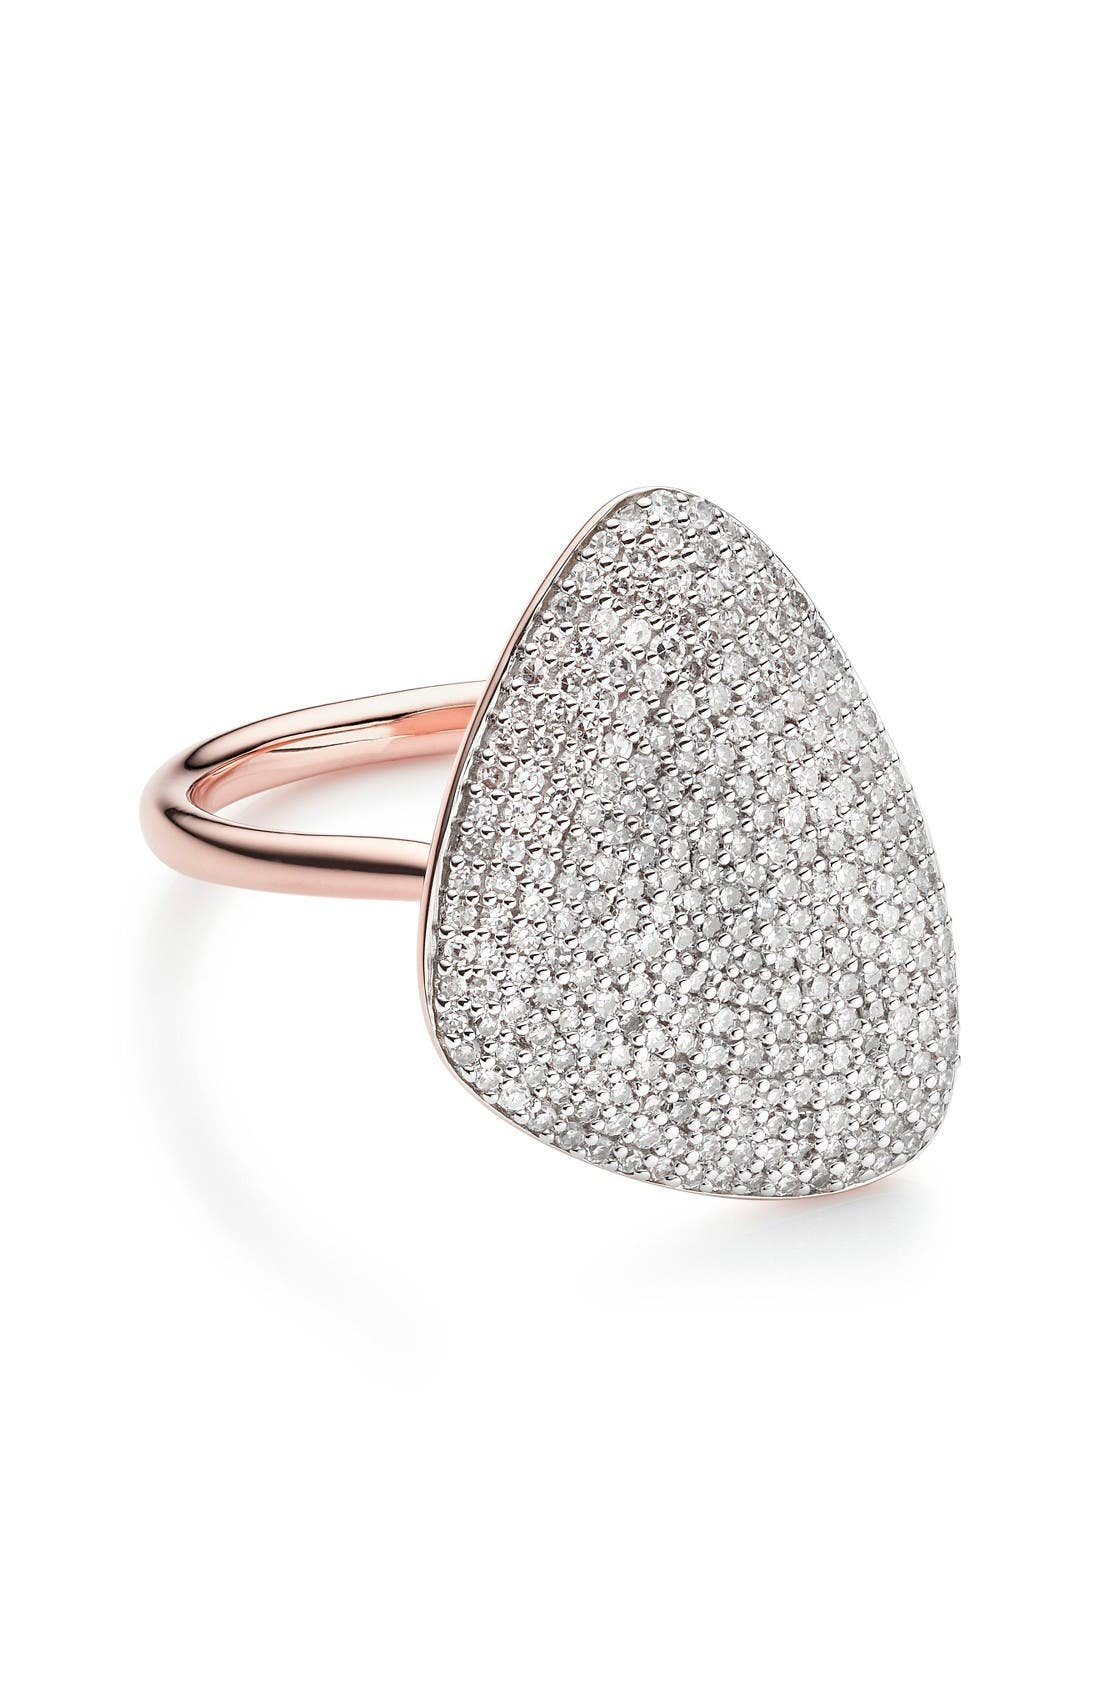 Nura Diamond Teardrop Ring,                             Main thumbnail 1, color,                             Rose Gold/ Diamond